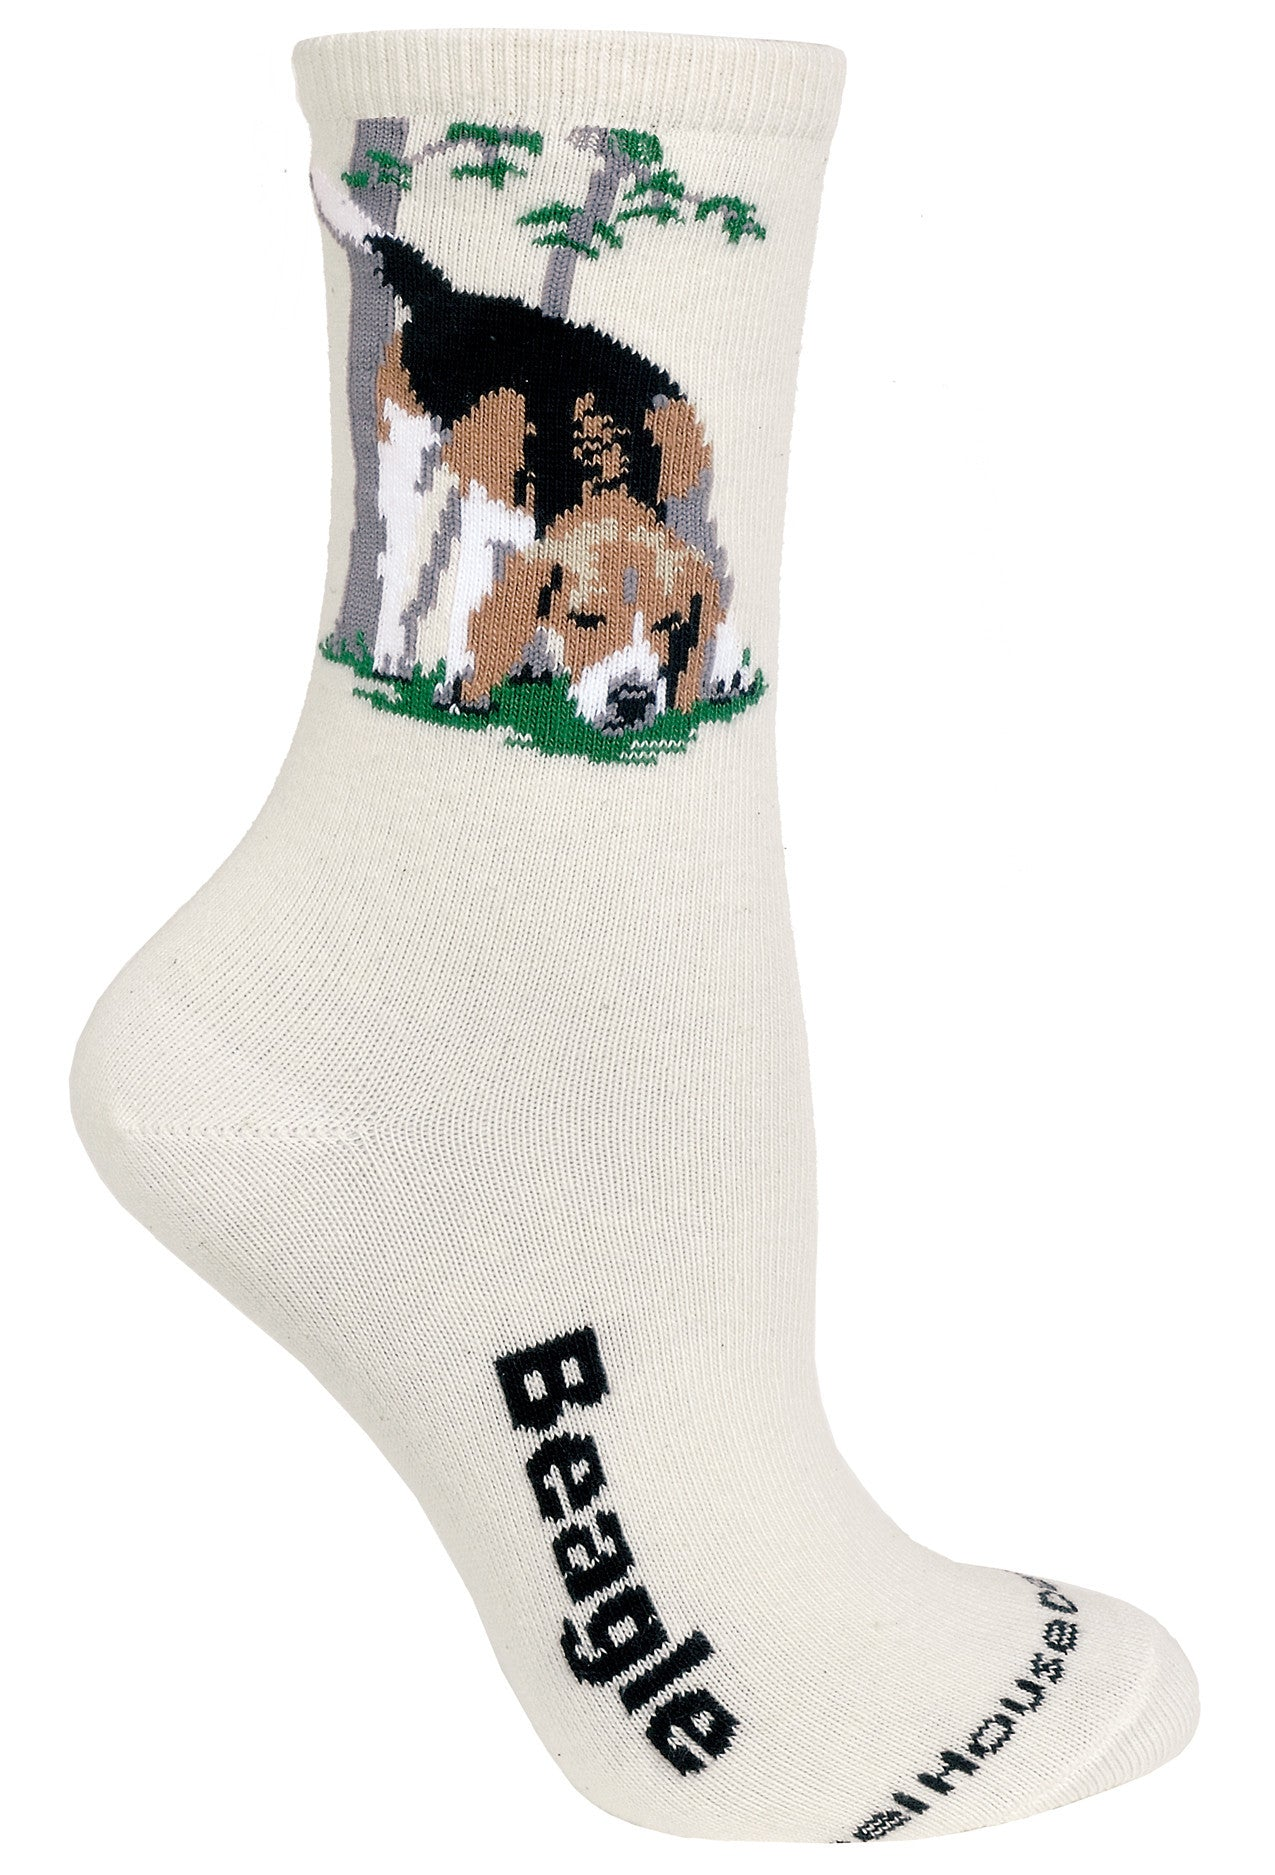 Beagle Crew Socks on Natural